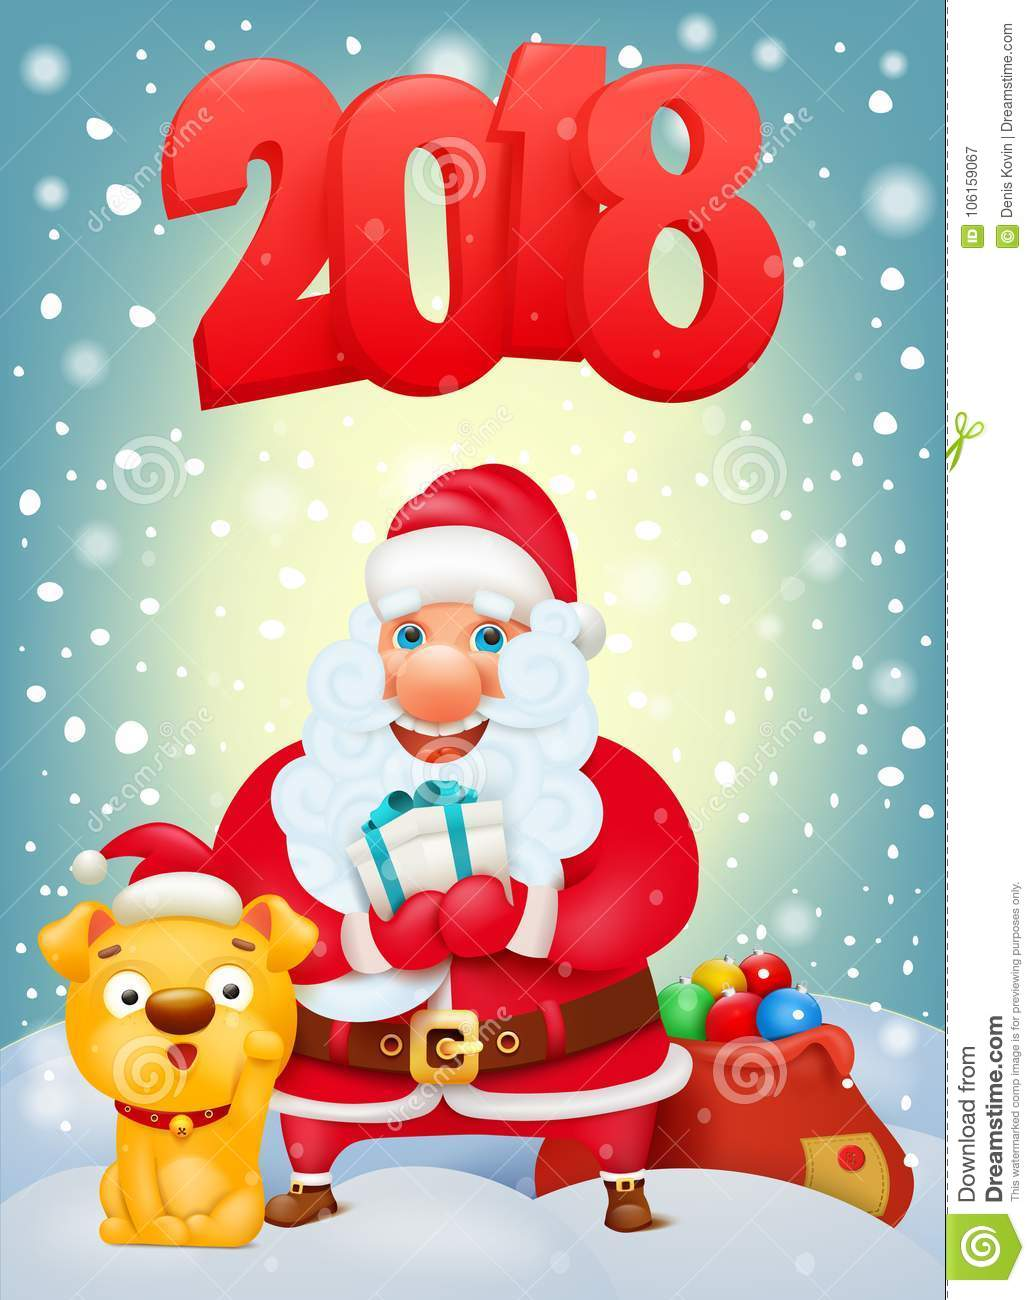 download santa claus cartoon character with yellow dog new year invitation card template stock